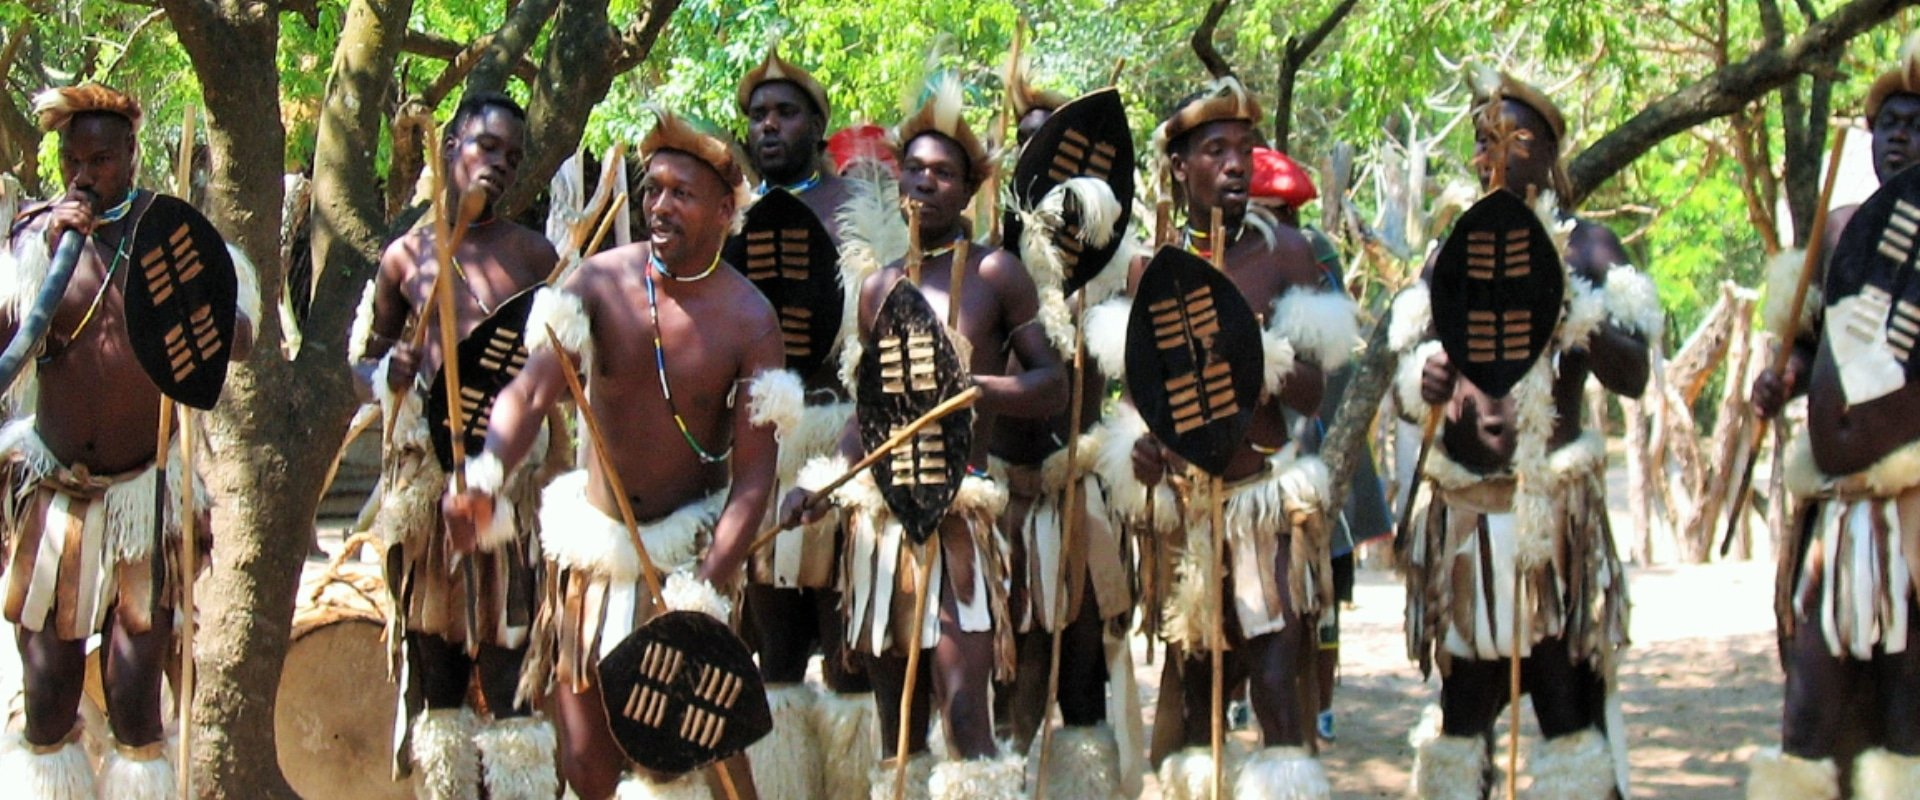 Visit the Swazi Cultural Village